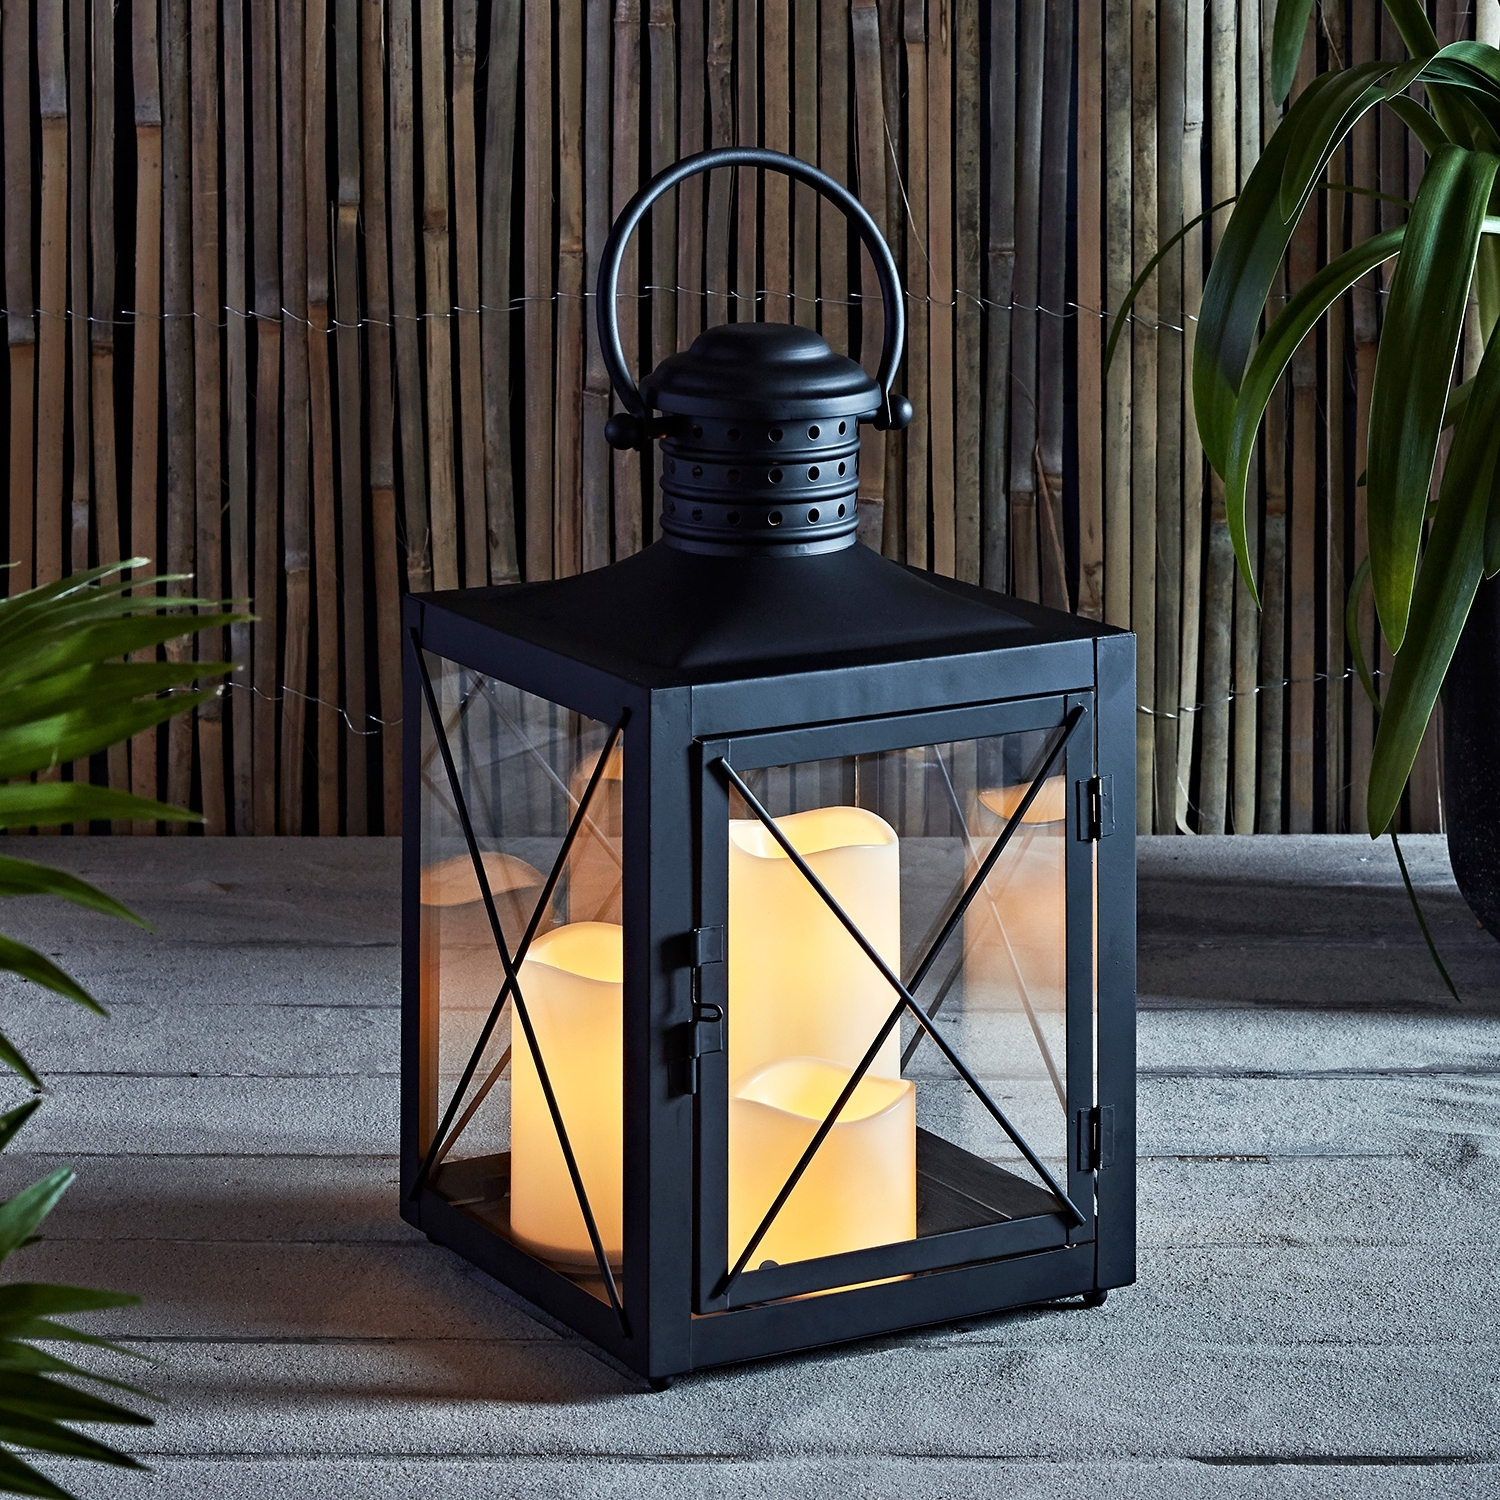 Jumbo Outdoor Lanterns Intended For Best And Newest Lights4fun, Inc (View 11 of 20)